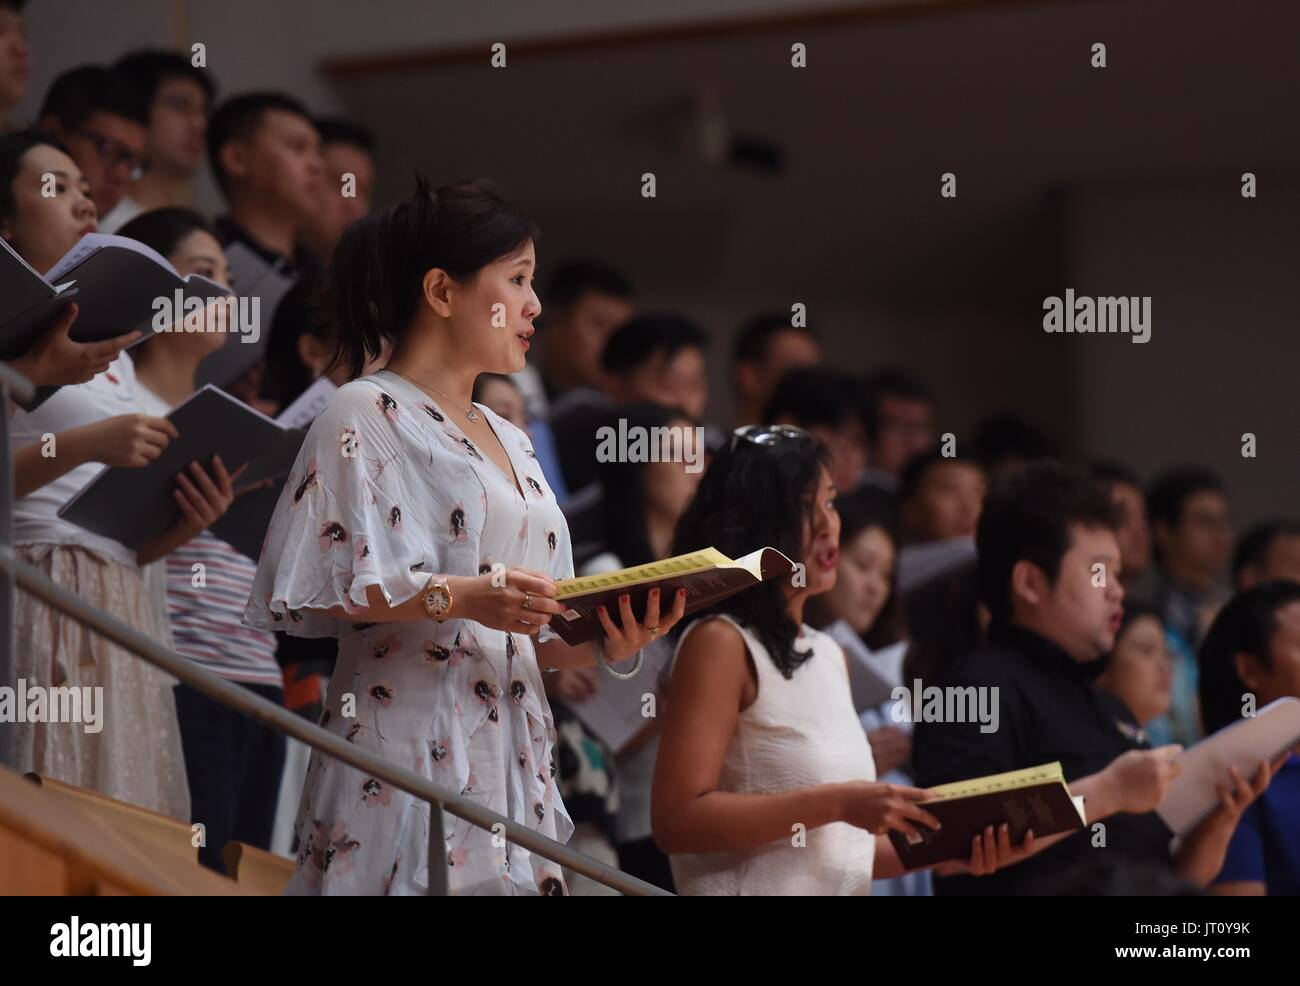 Beijing, China. 7th Aug, 2017. China National Center for the Performing Arts(NCPA) Chorus rehearse 'Ode to Joy' in Beijing, capital of China, Aug. 7, 2017. NCPA invited media and more than 110 audience to the rehearsal on Monday. From August 8th to 9th, Lu Jia will conduct NCPA Orchestra and Chorus to interpret Beethoven's Symphony No. 9 in D Minor, also known as 'the Choral'. Credit: Luo Xiaoguang/Xinhua/Alamy Live News - Stock Image